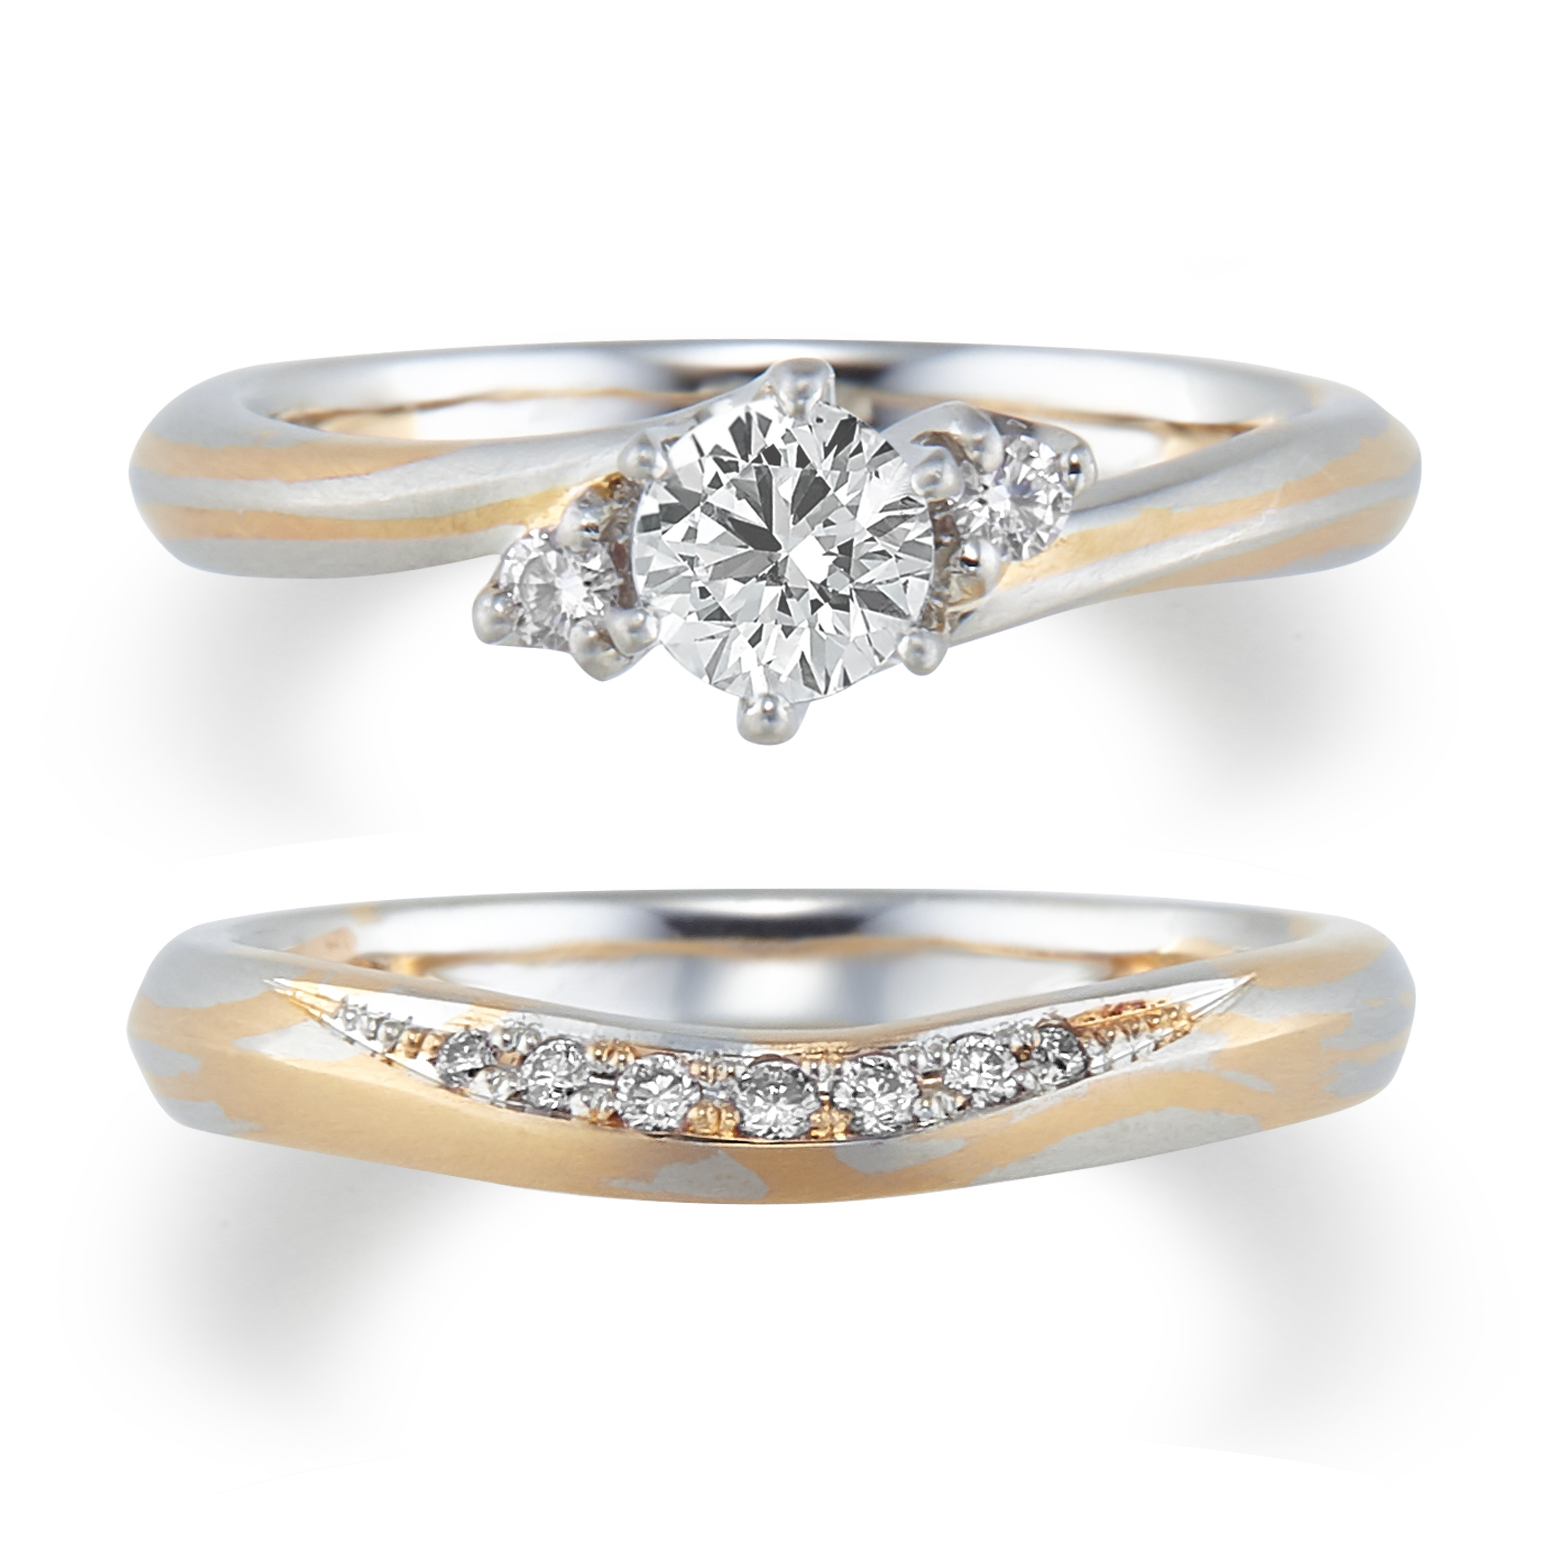 Wedding Bands - Singapore:hidamari_02